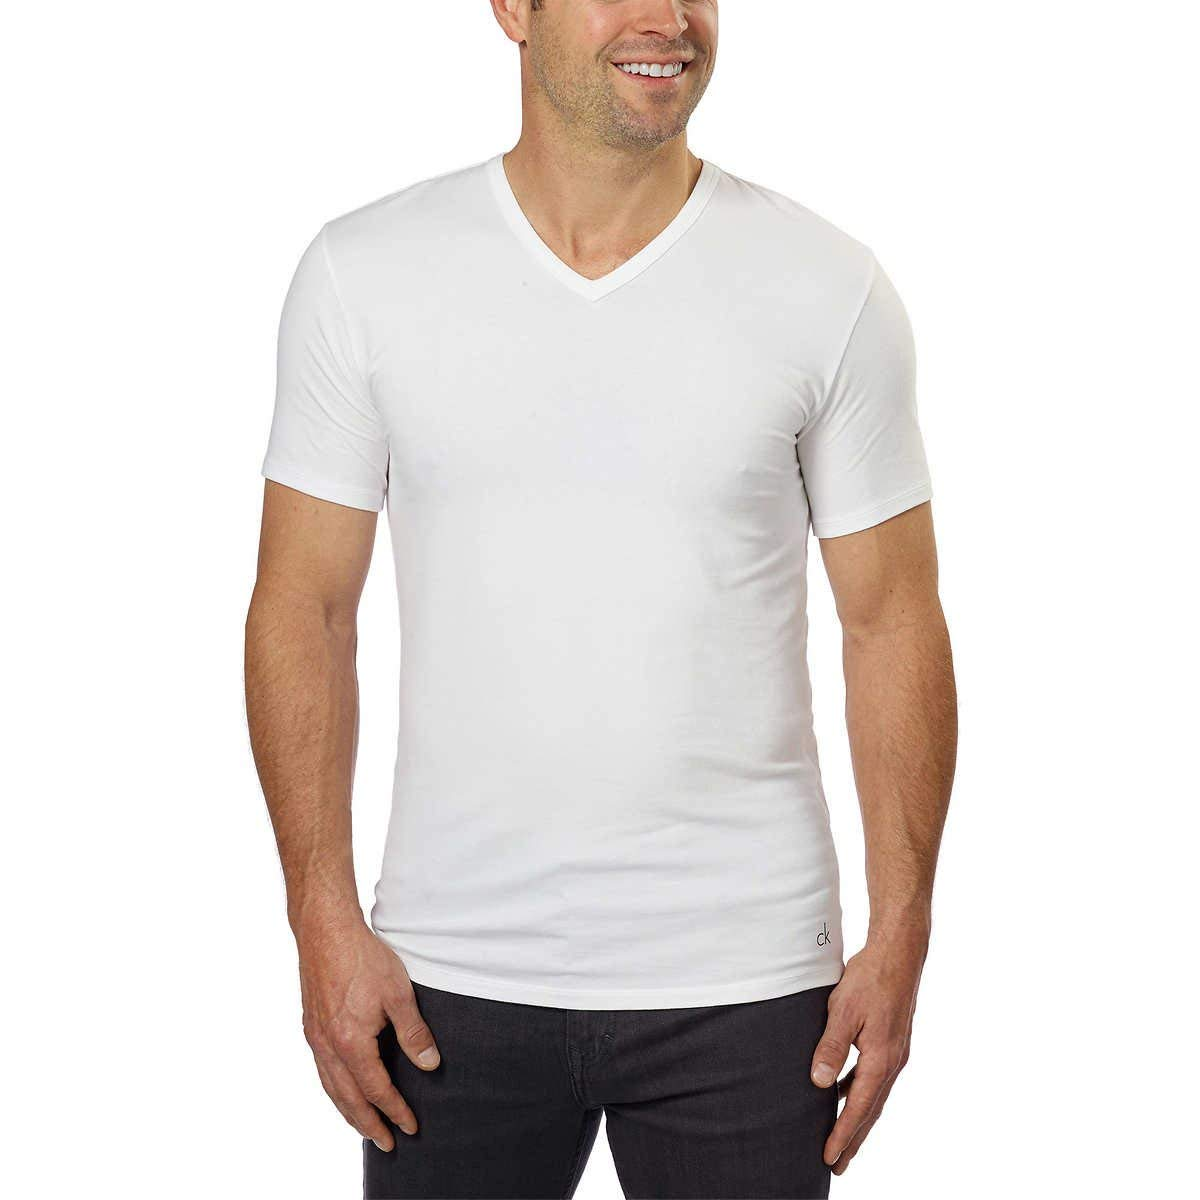 Calvin Klein Cotton Stretch V-Neck, Classic Fit T-Shirt, Men's (3-pack) (White or Black) (White, Large) by Calvin Klein